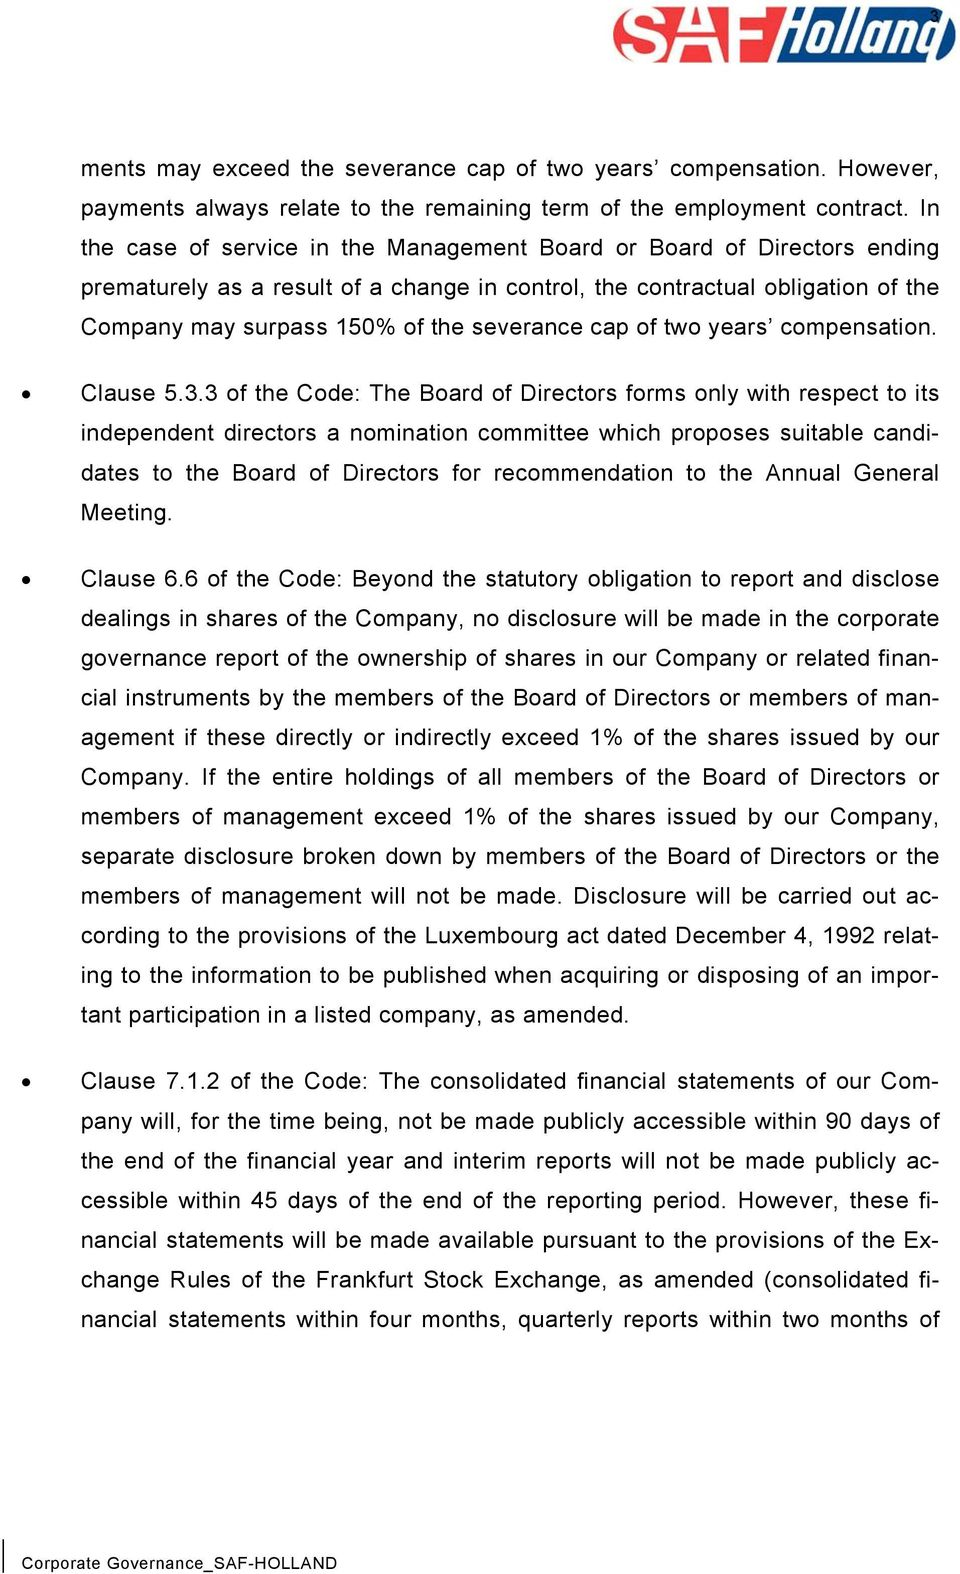 cap of two years compensation. Clause 5.3.